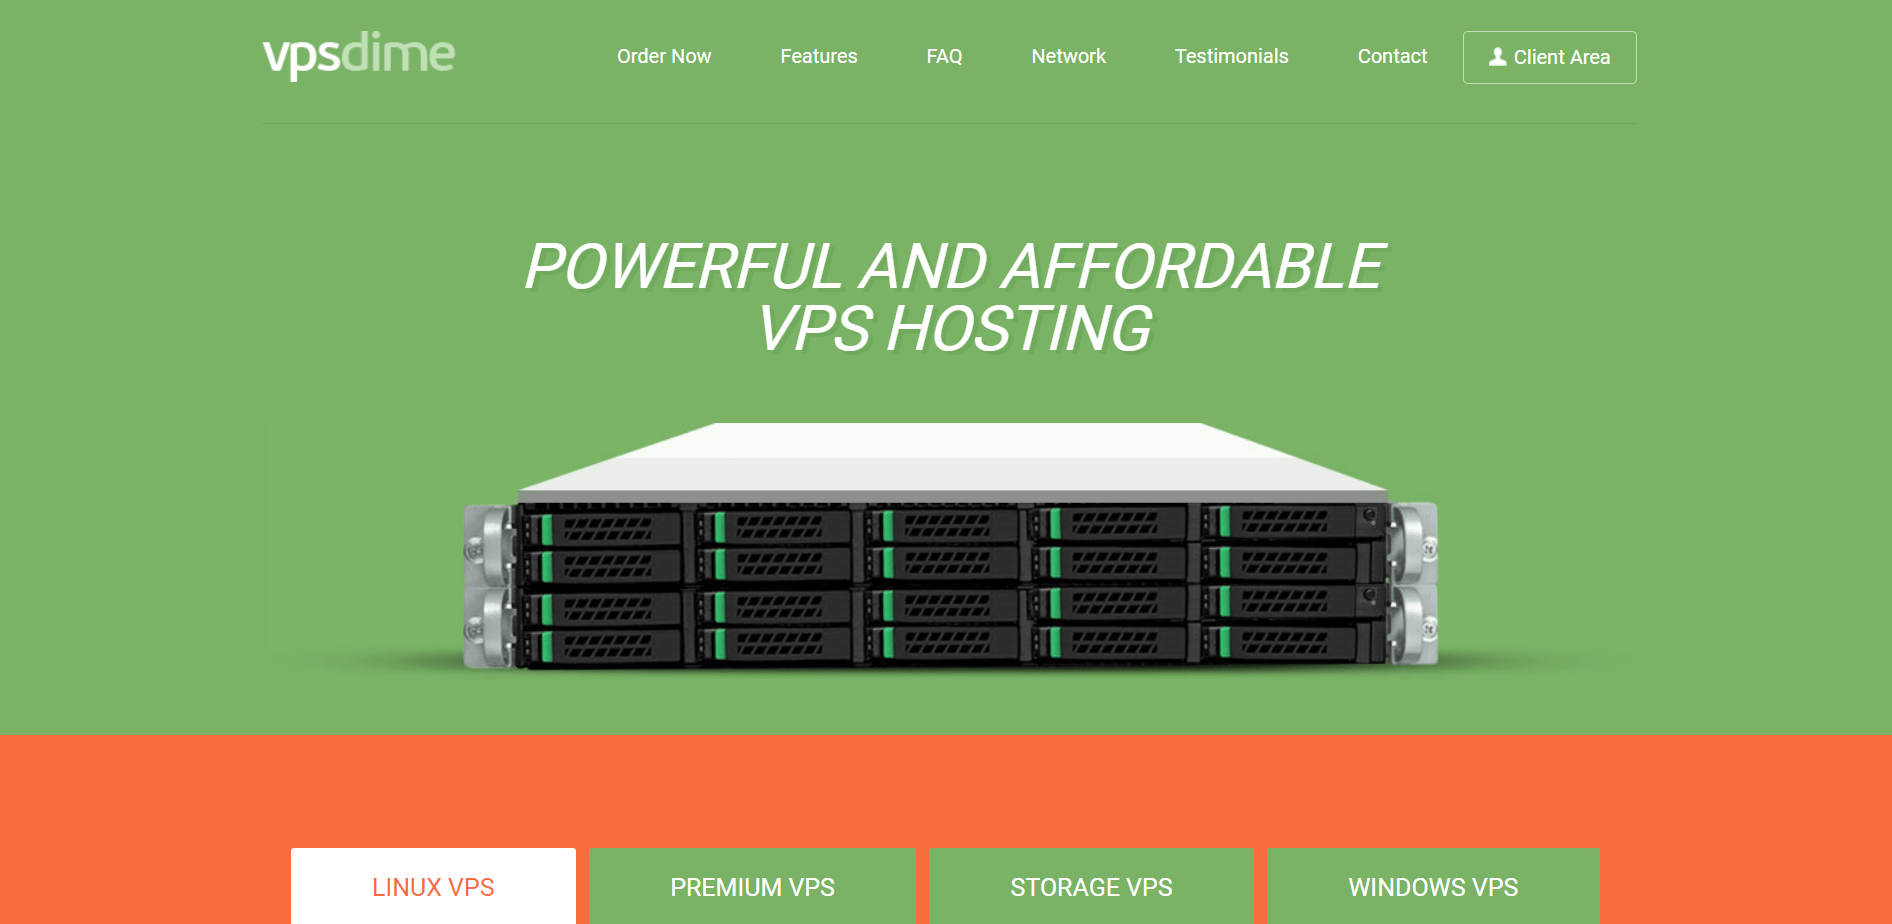 vpsdime-review-2020-is-it-a-wise-investment[1]